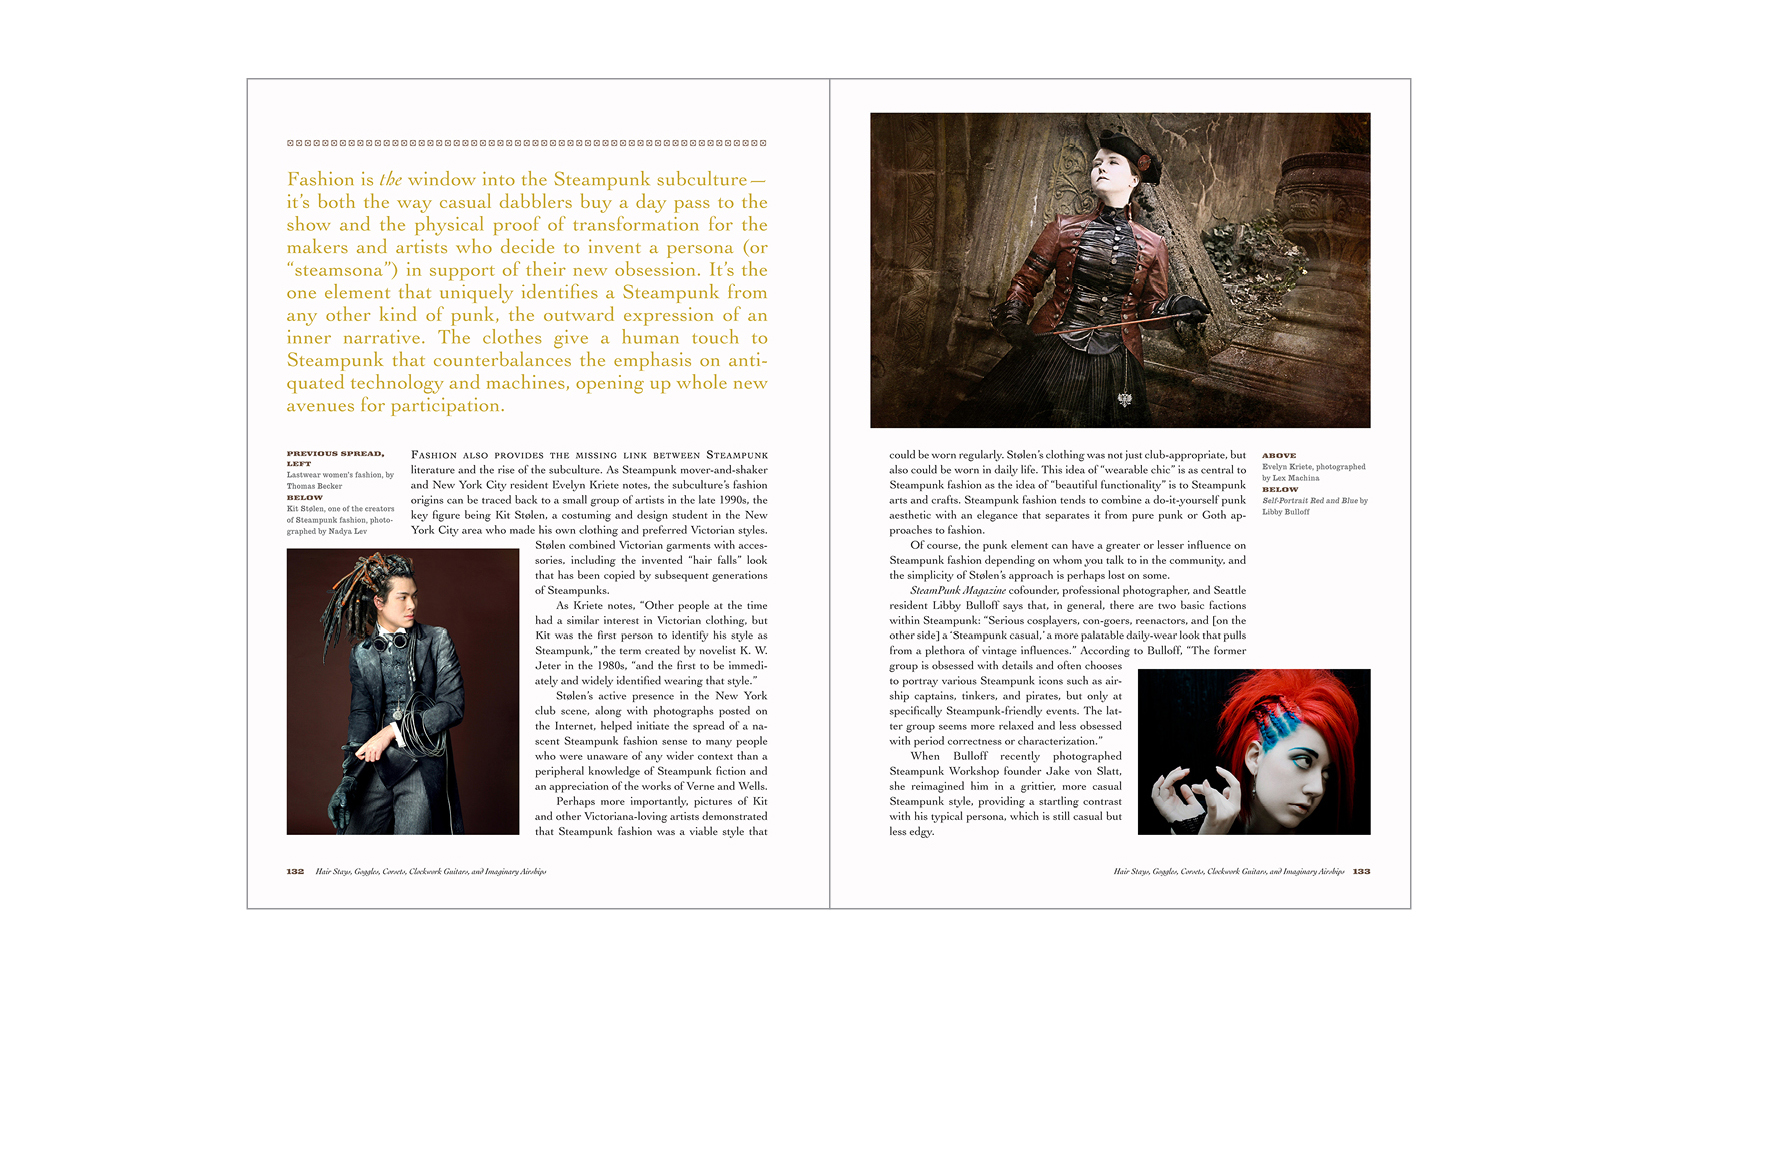 Typical spread -  Chapter introduction with large lead-in text, variety of photo sizes